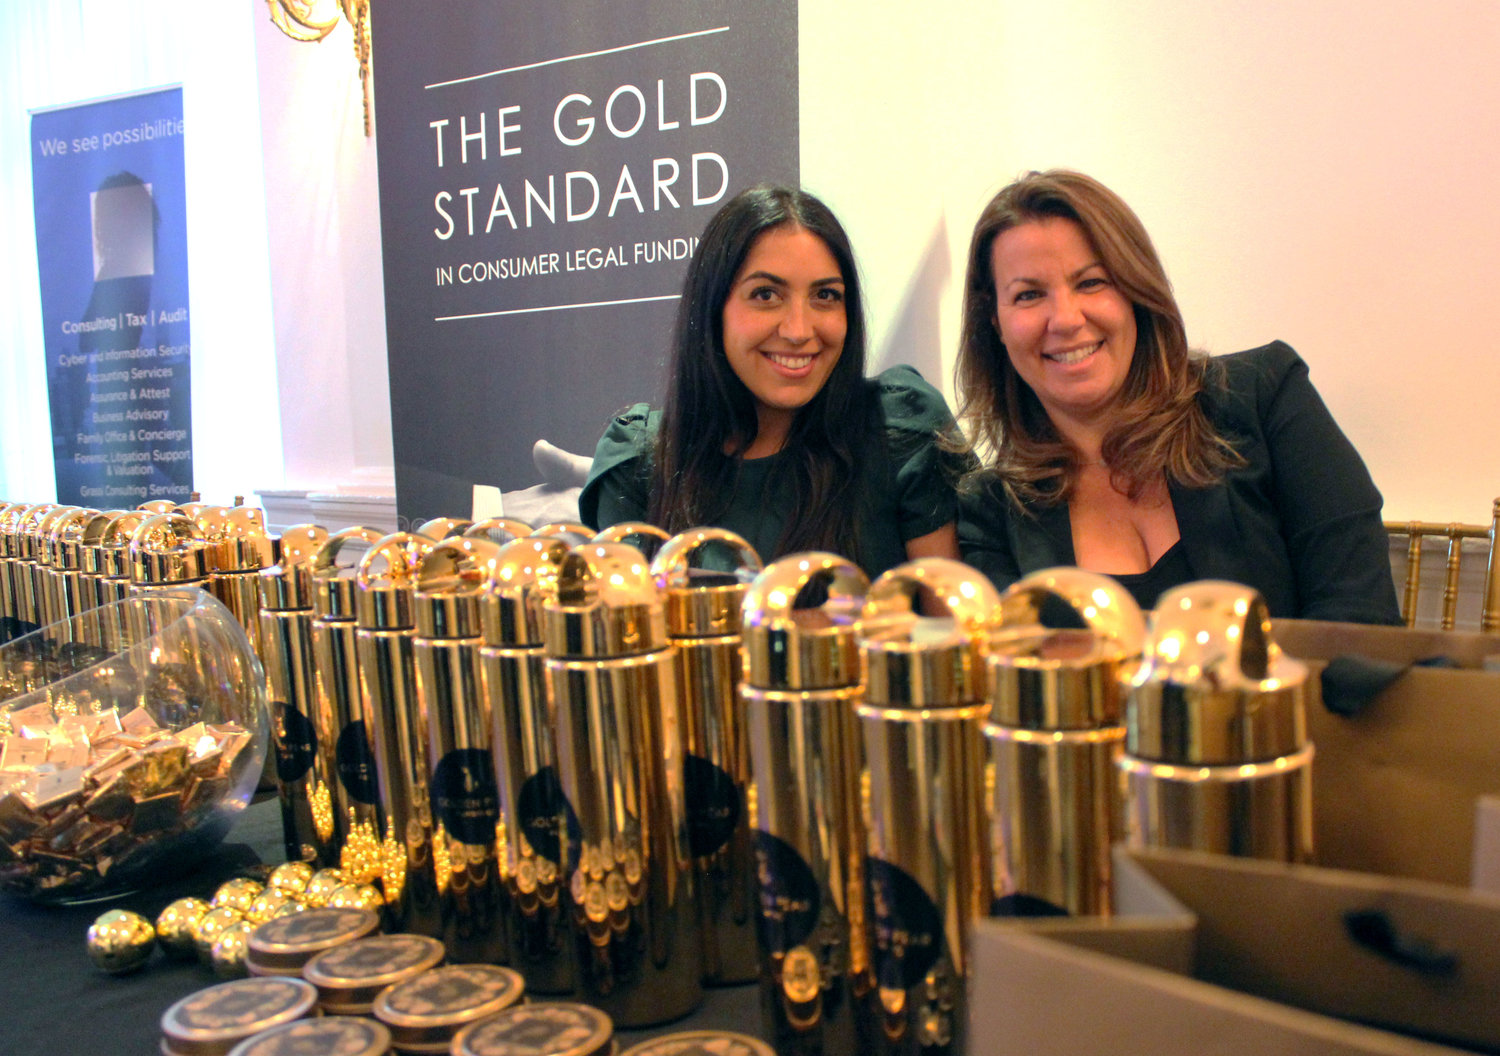 Samantha DeVictoria and Samantha Frankel, sales managers at Golden Pear Funding, greeted honorees and guests at a networking and cocktail party.